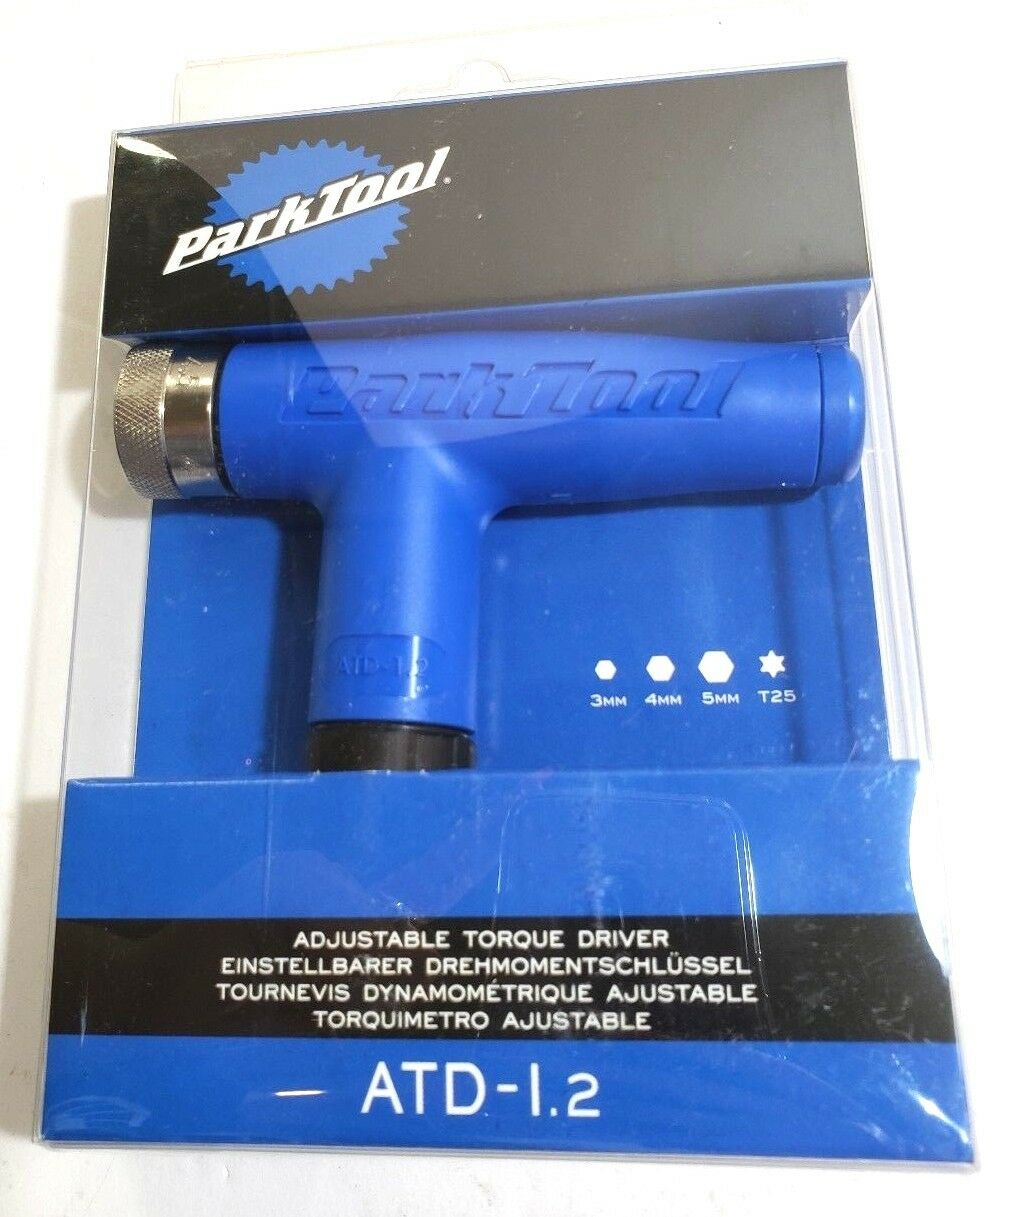 Park Park Park Tool ATD-1.2 Adjustable 4 4.5 5 5.5 6Nm Bike Torque Wrench 3 4 5mm Hex T25 f98768